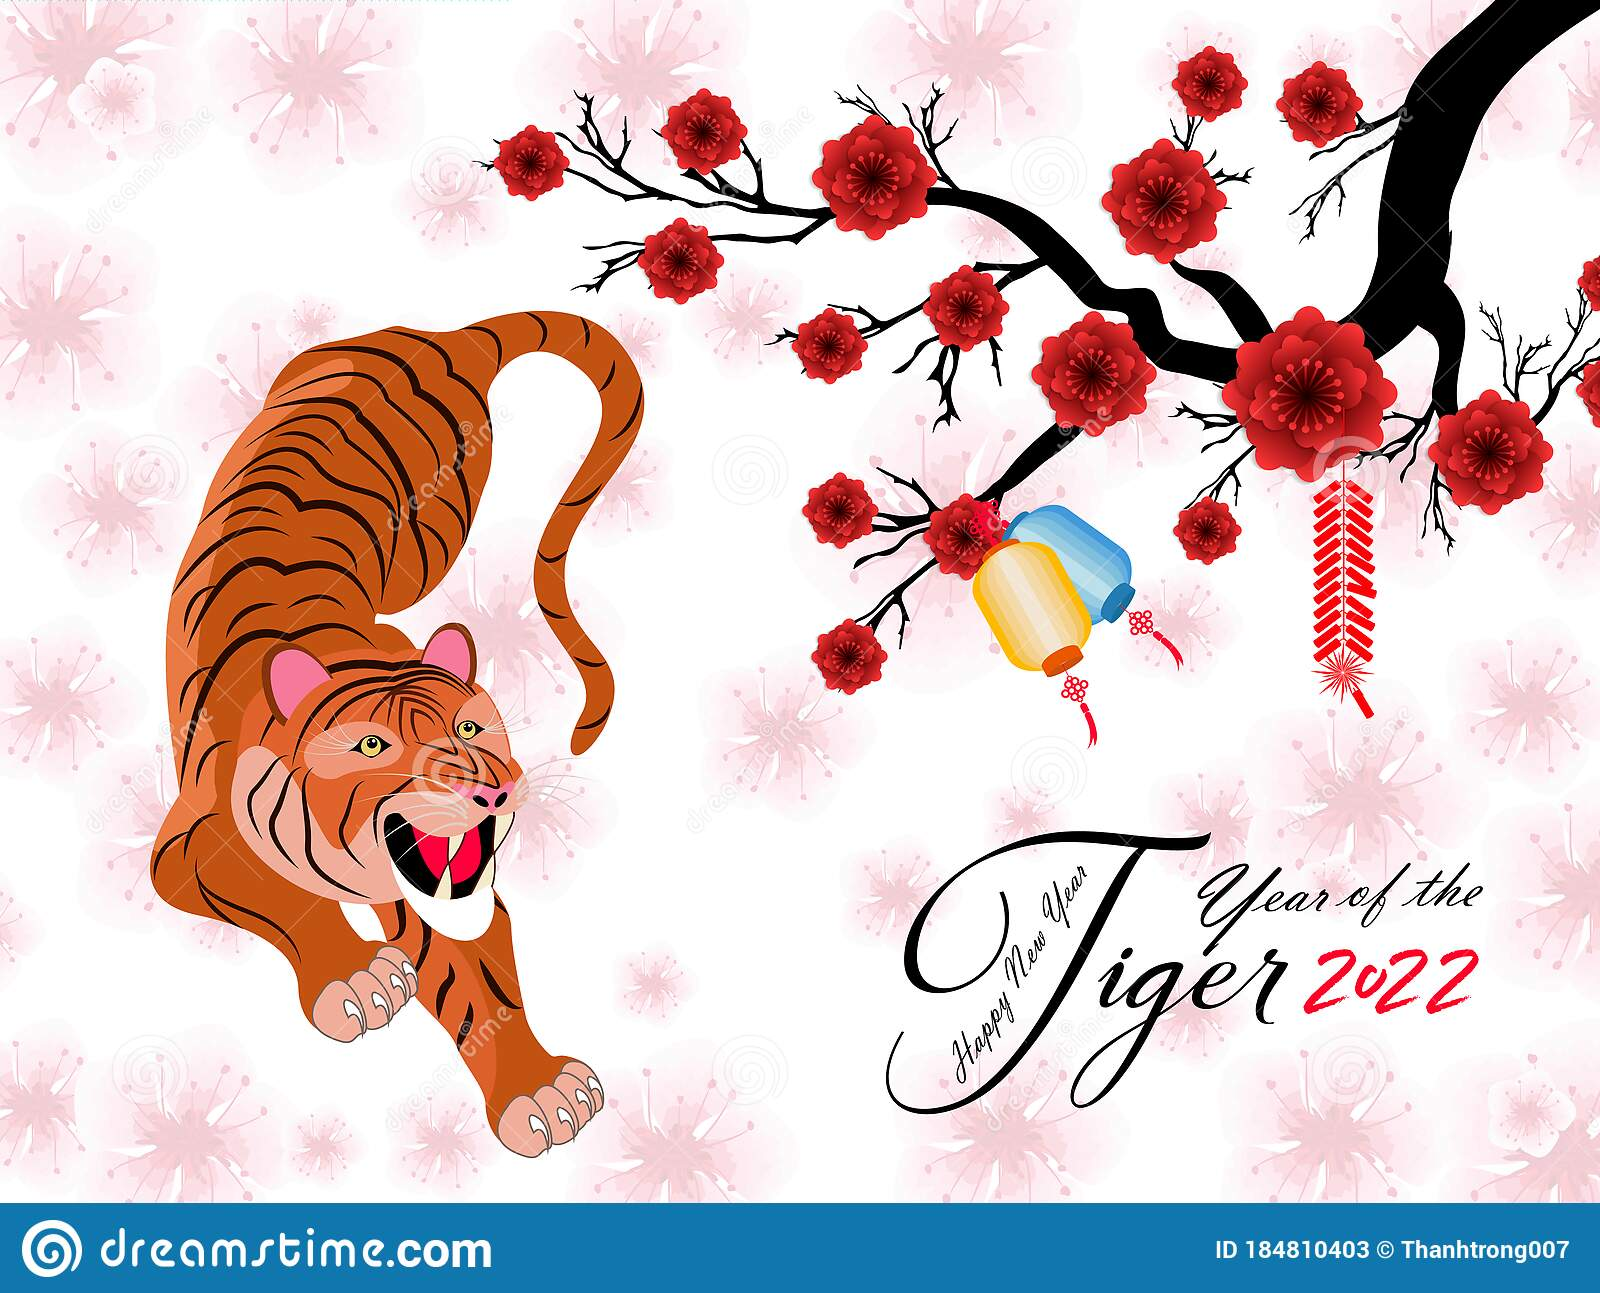 Chinese New Year 2022 Year Of The Tiger Lunar New Year Banner Design Template Zodiac Sign Abstract Flower Texture Horoscop Stock Vector Illustration Of Flower Animal 184810403